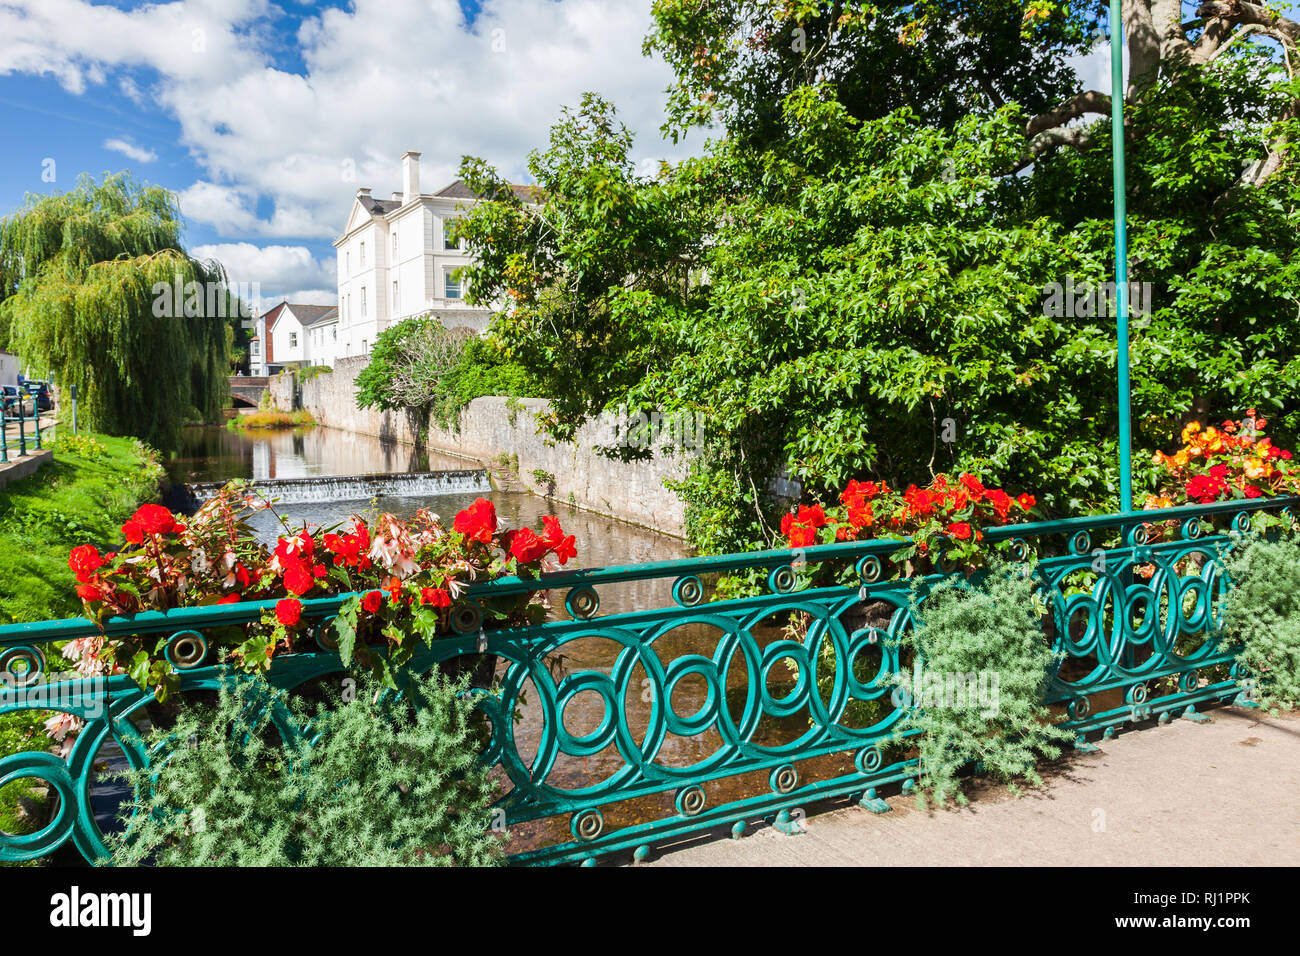 The river flowing through the town of Dawlish Devon England UK Europe - Stock Image